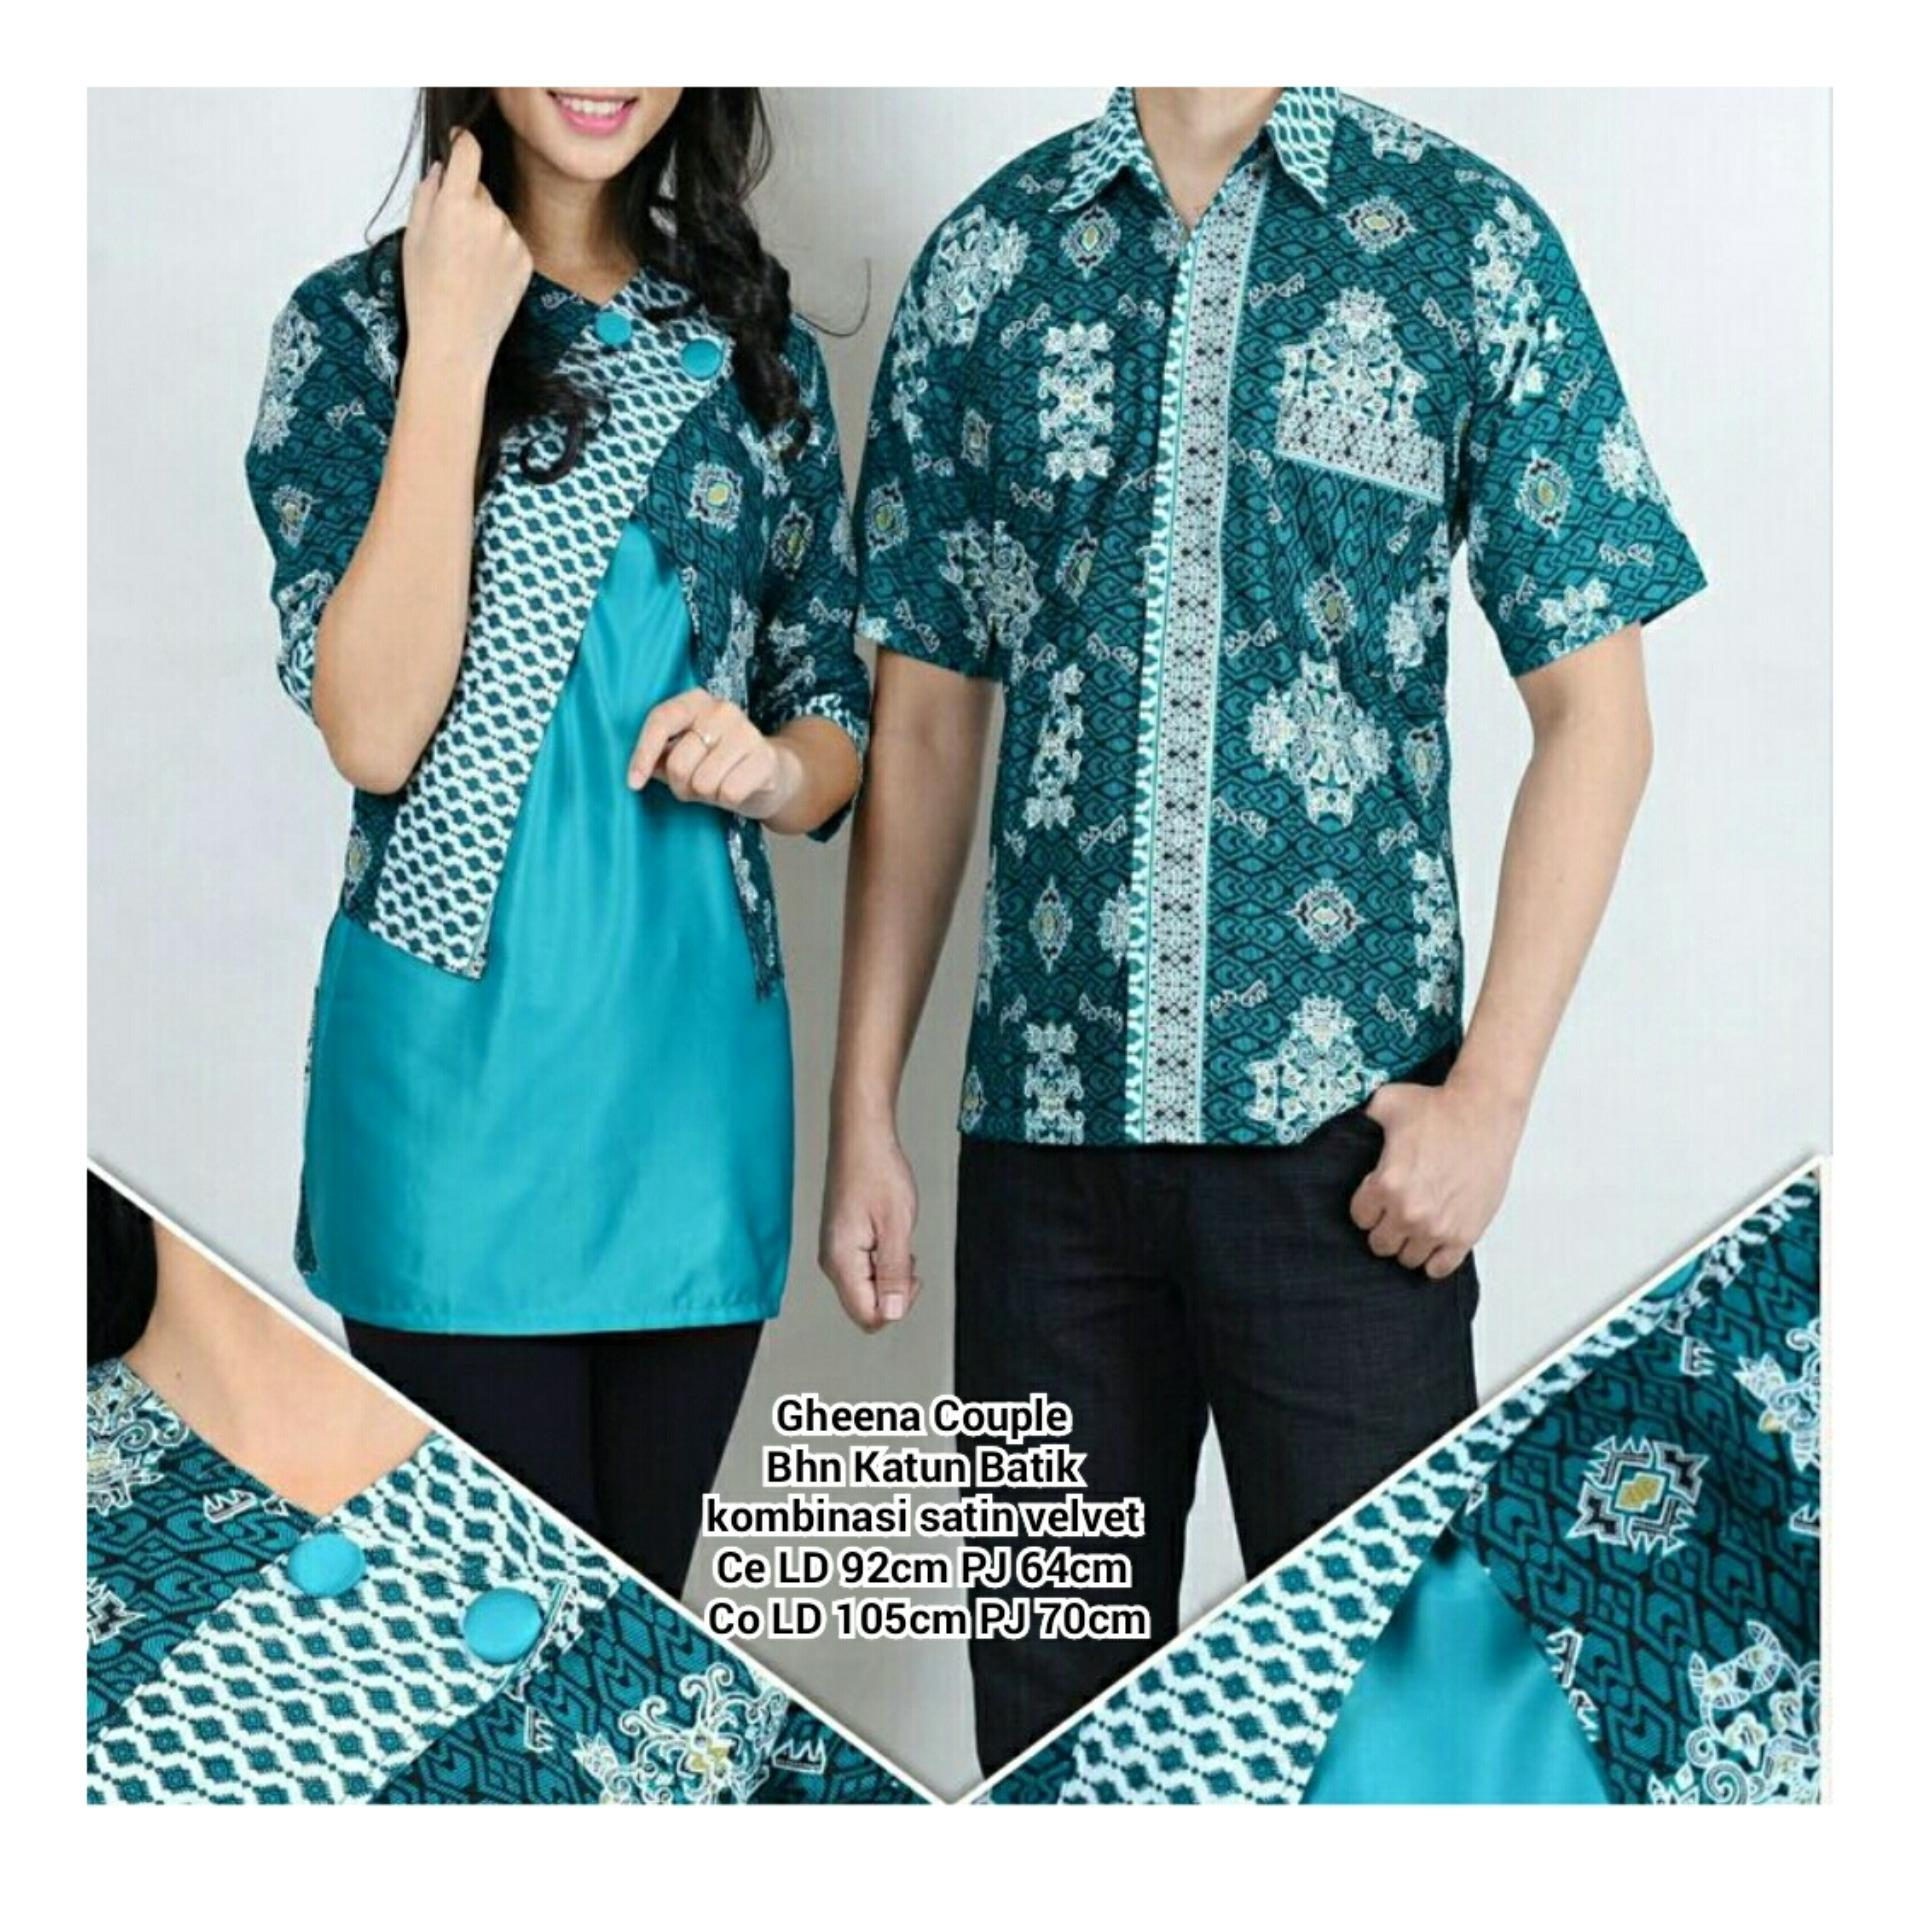 Qx Sb Collection Couple Atasan Kemeja Batik Gheena Hijau Sb Collection Murah Di Banten